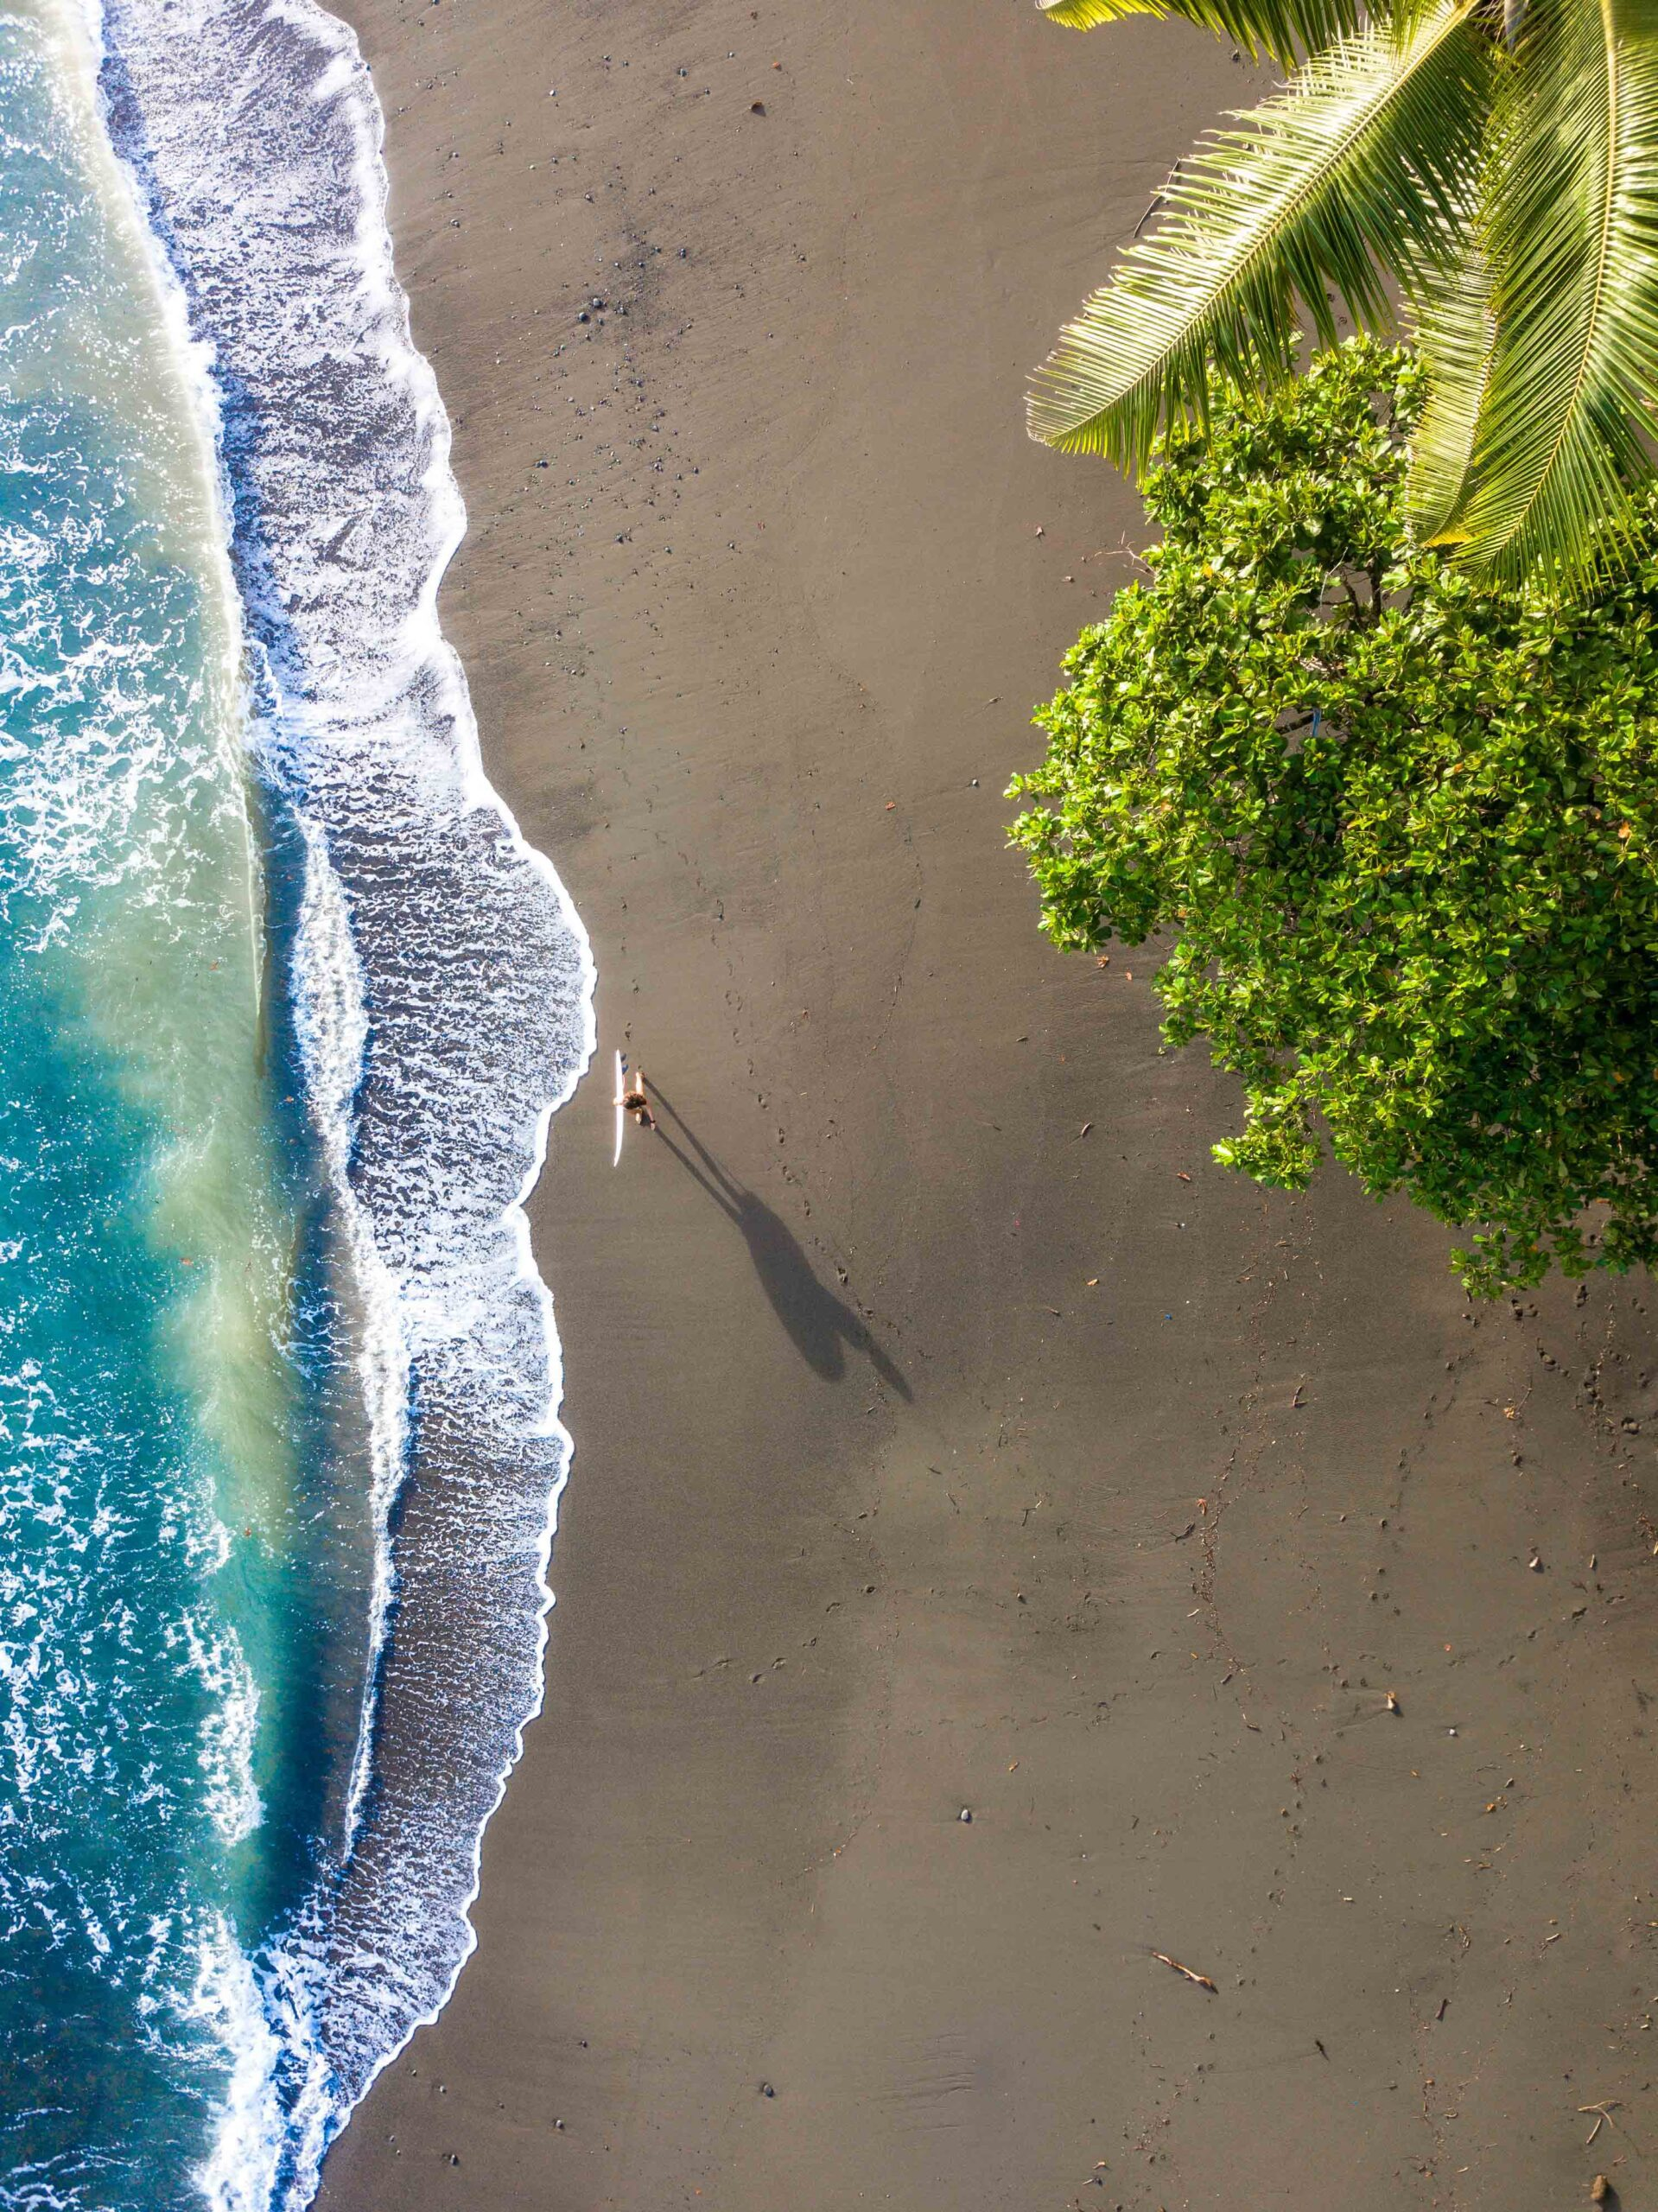 Surfer girl on the beach drone shot in Costa Rica